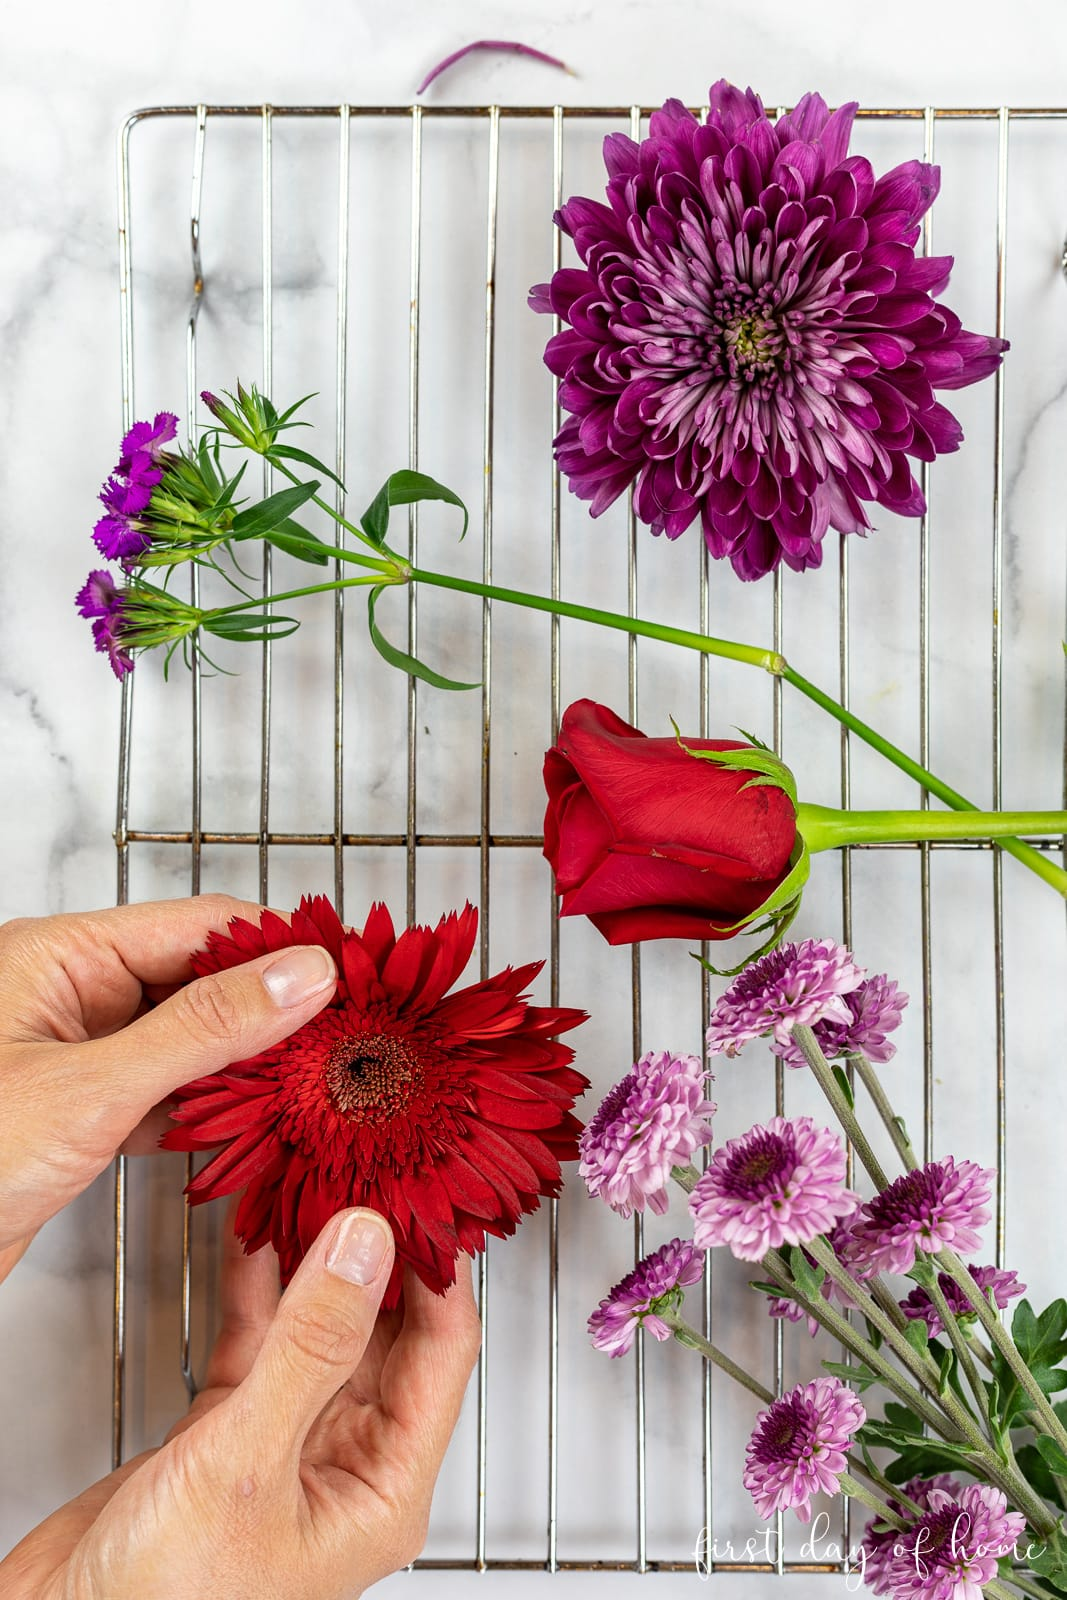 Preparing flowers to dry in the oven on a baking rack